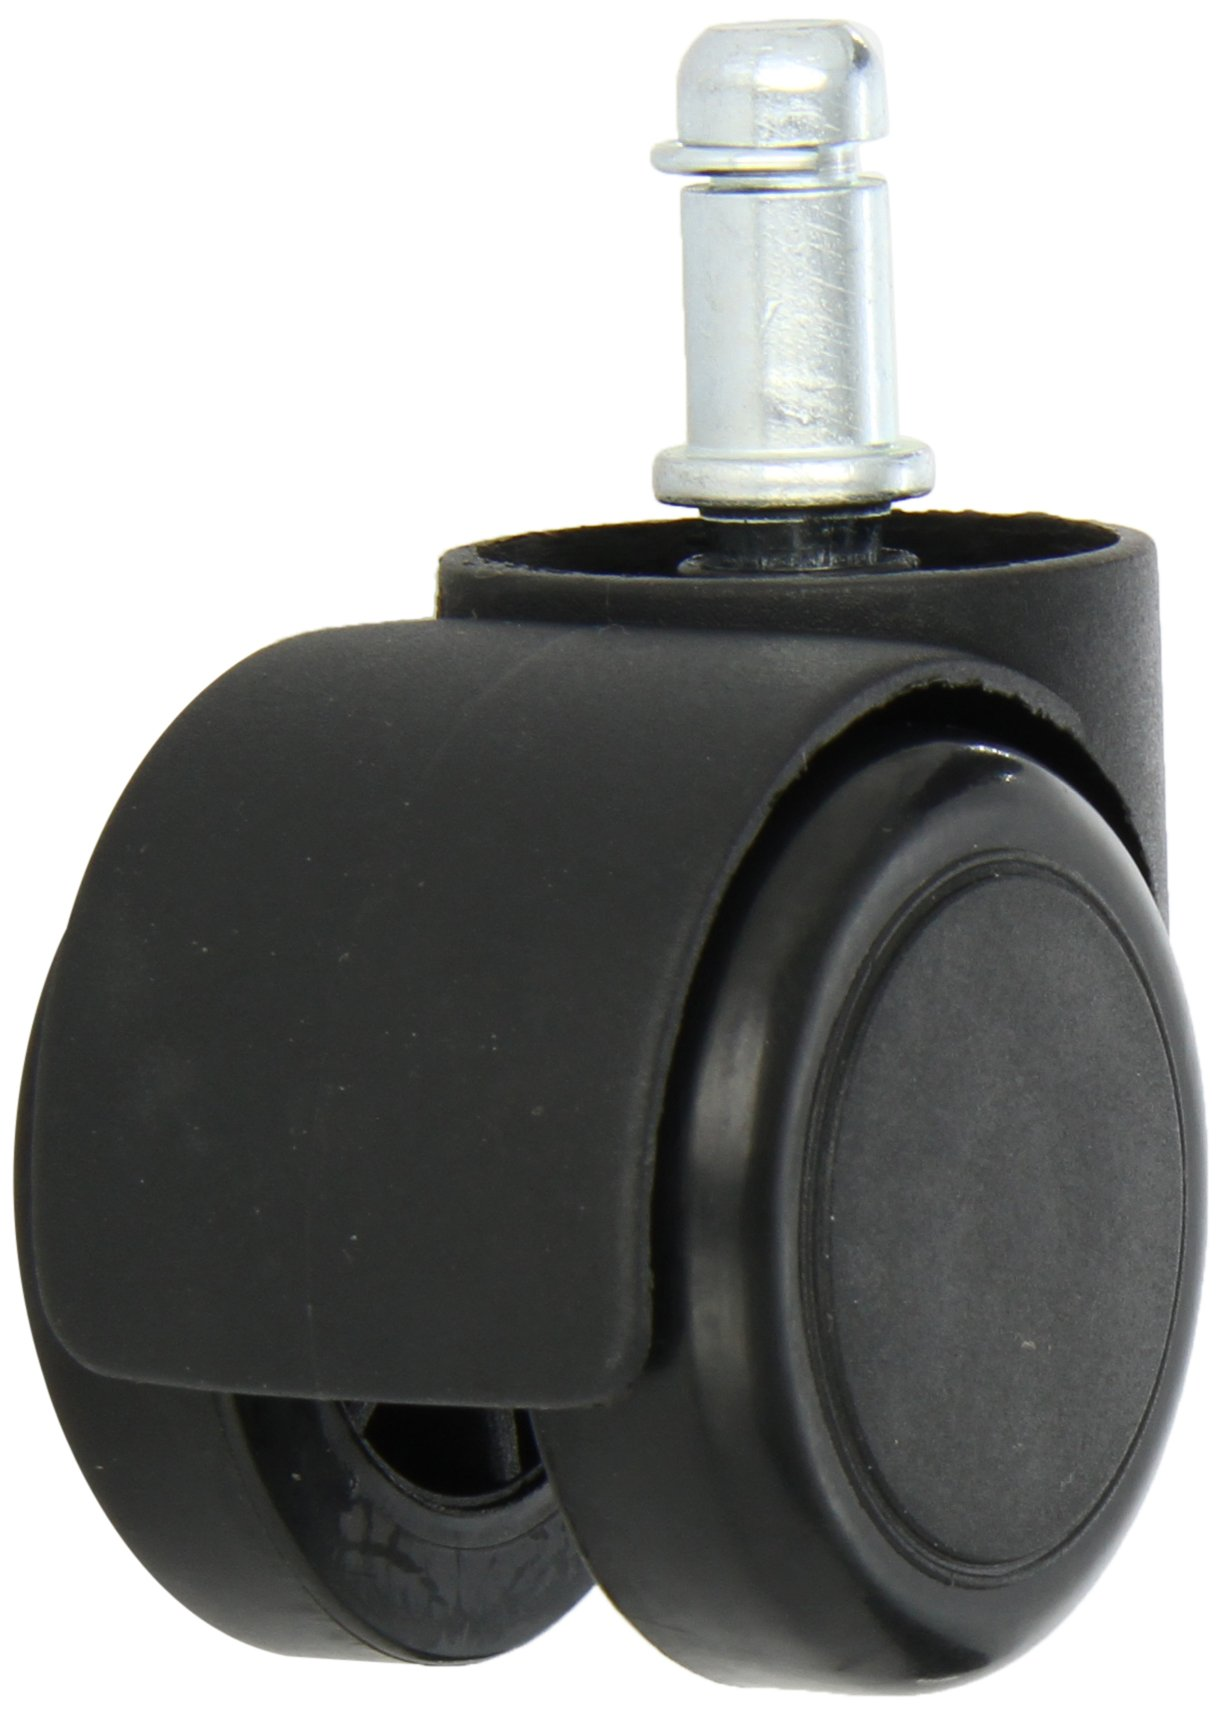 Bevco S3850S5 Hard Floor Casters for Models with 5-star Bases (Set of 5)